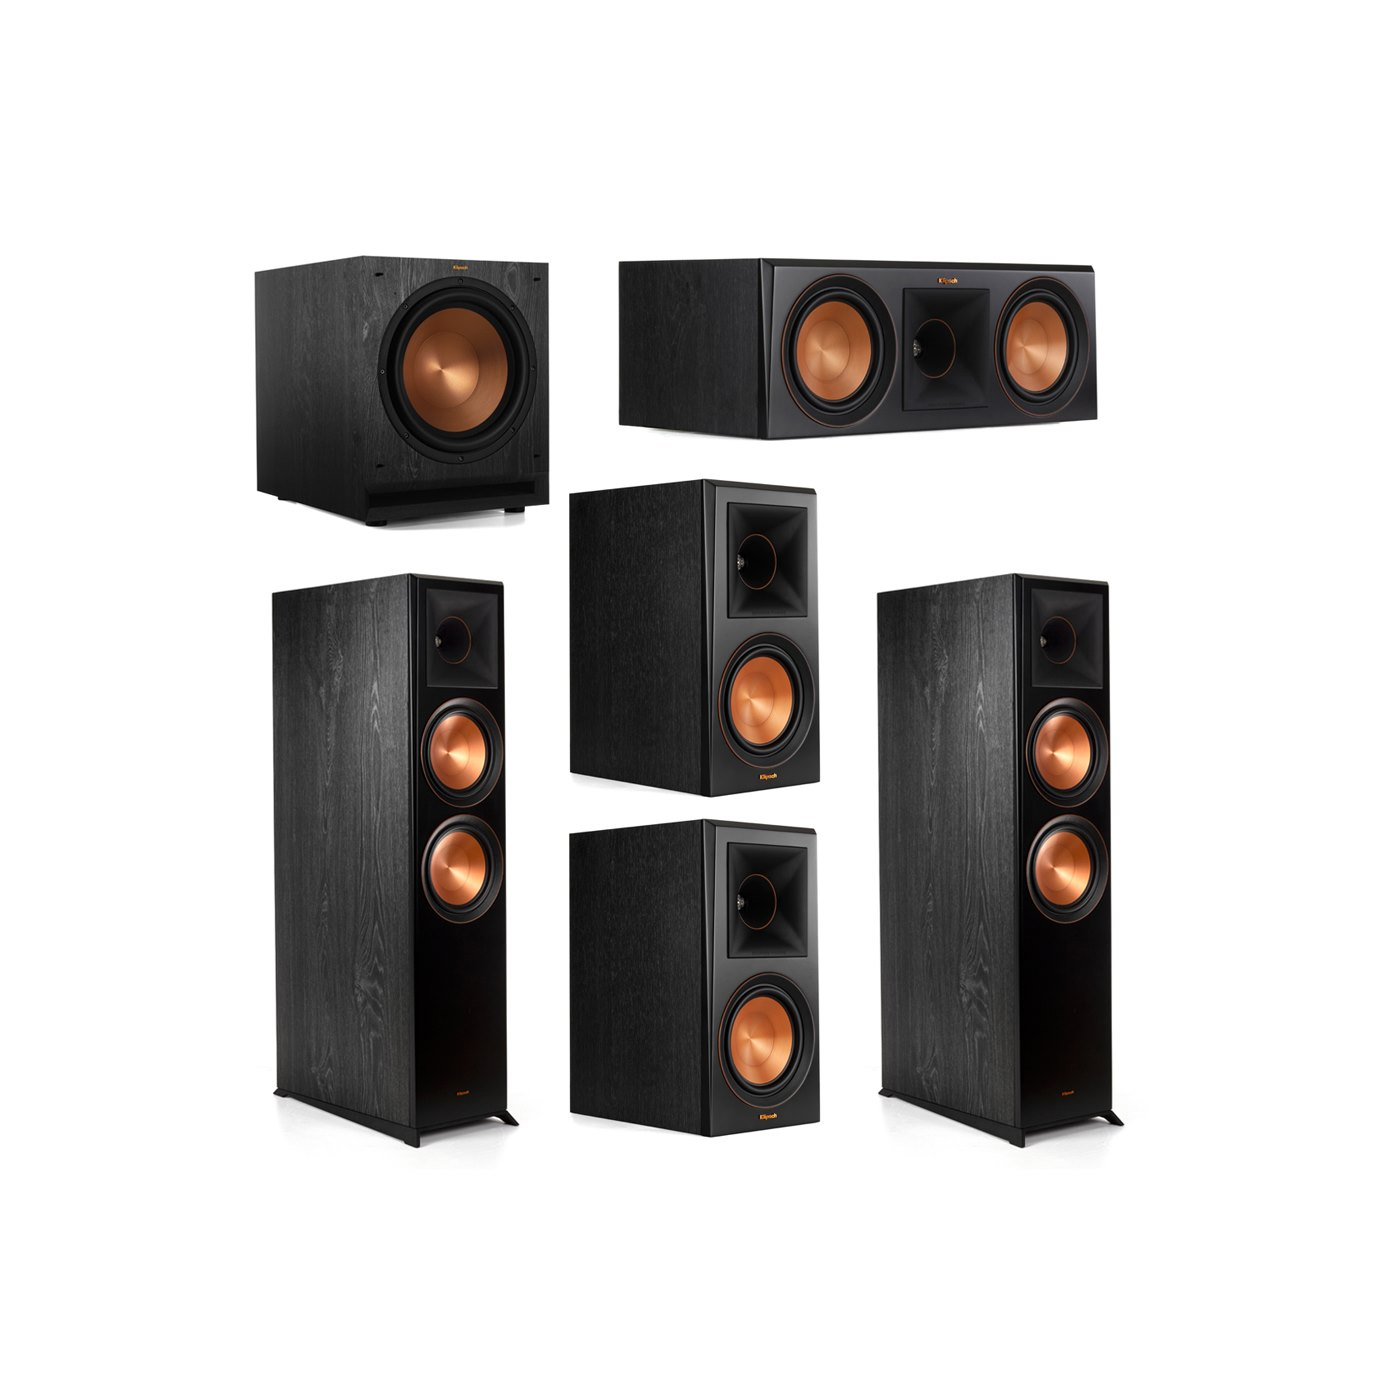 Klipsch 5.1.2 System - 2 RP-8060FA Dolby Atmos Speakers, 1 RP-600C, 2 RP-600M Speakers, 1 SPL-120